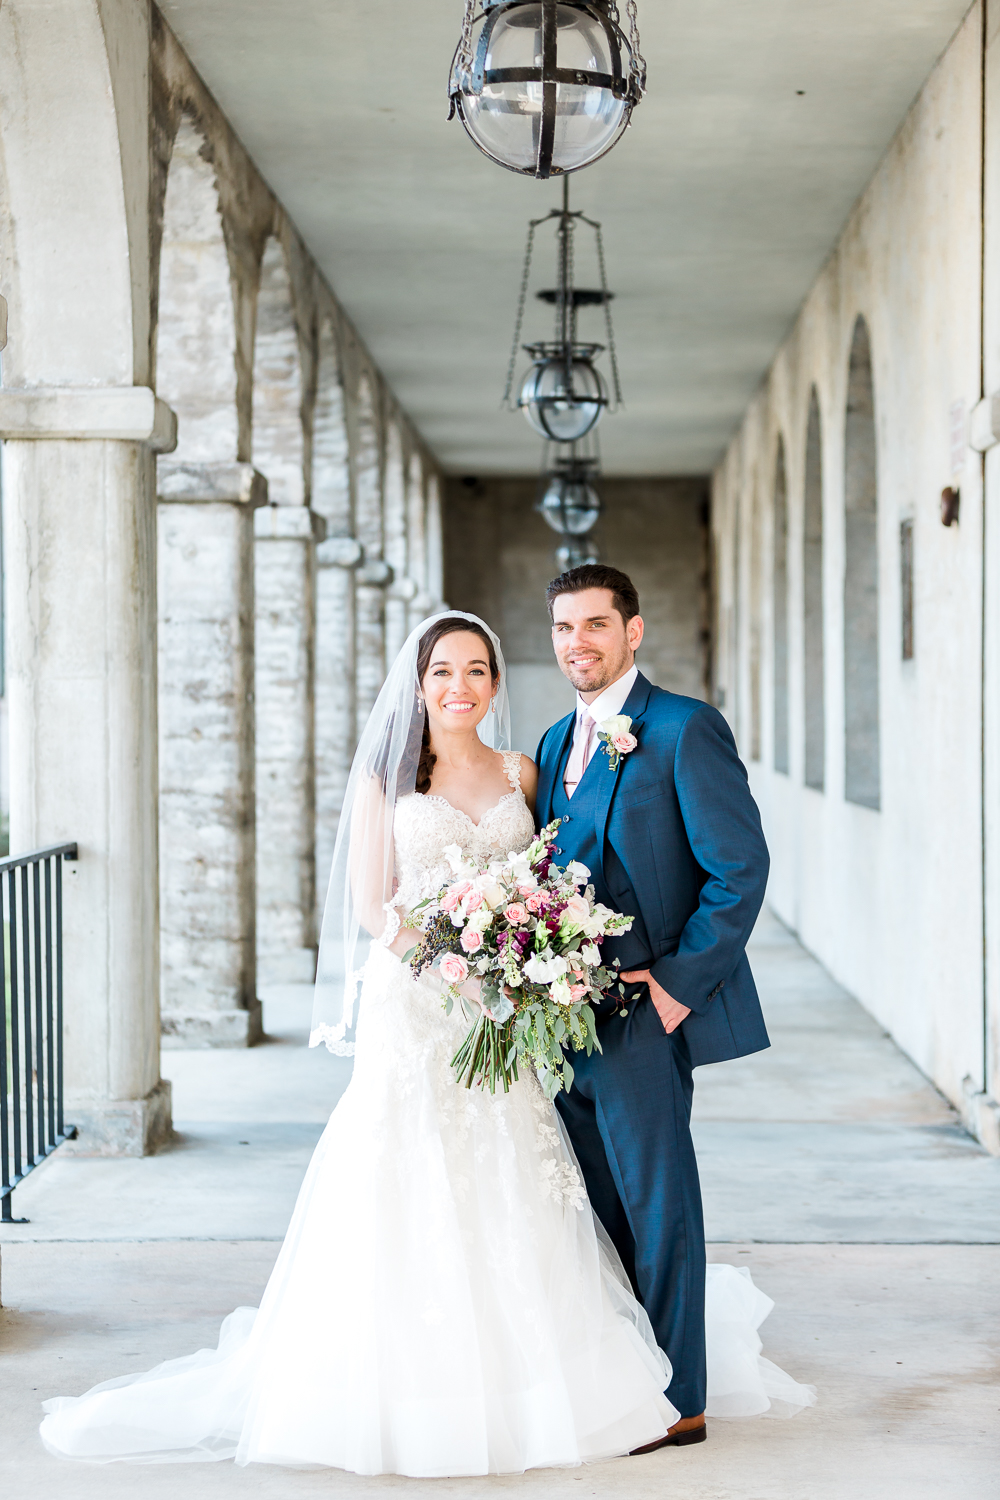 Bride and groom's formal photos in the Ligthtner Museum